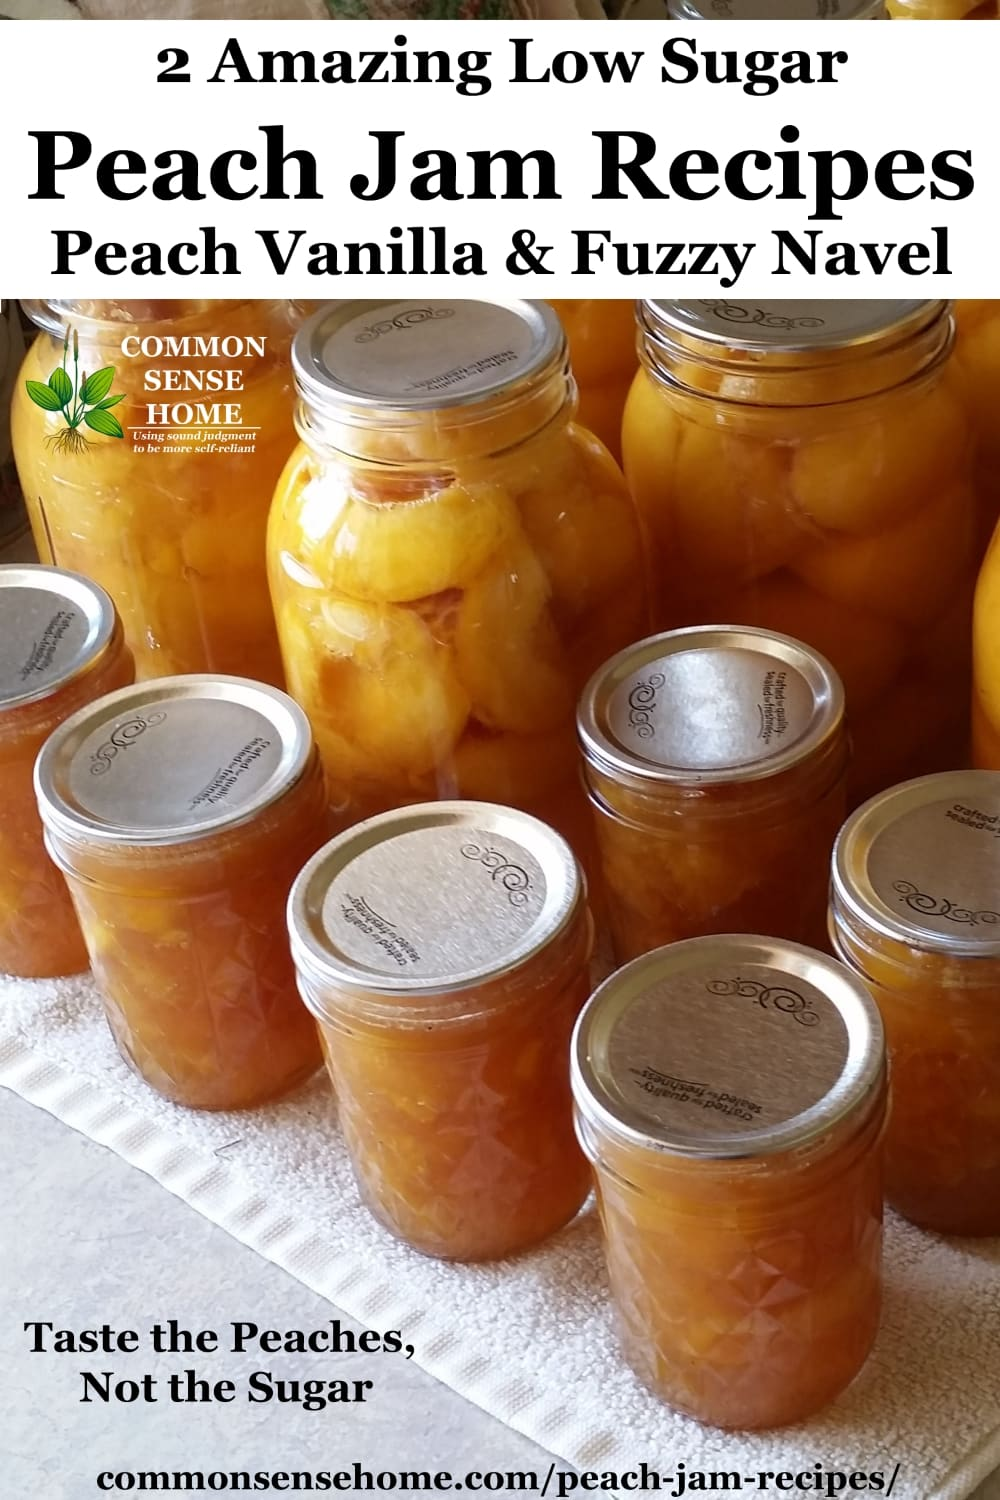 Finished peach jam alongside canned peaches.